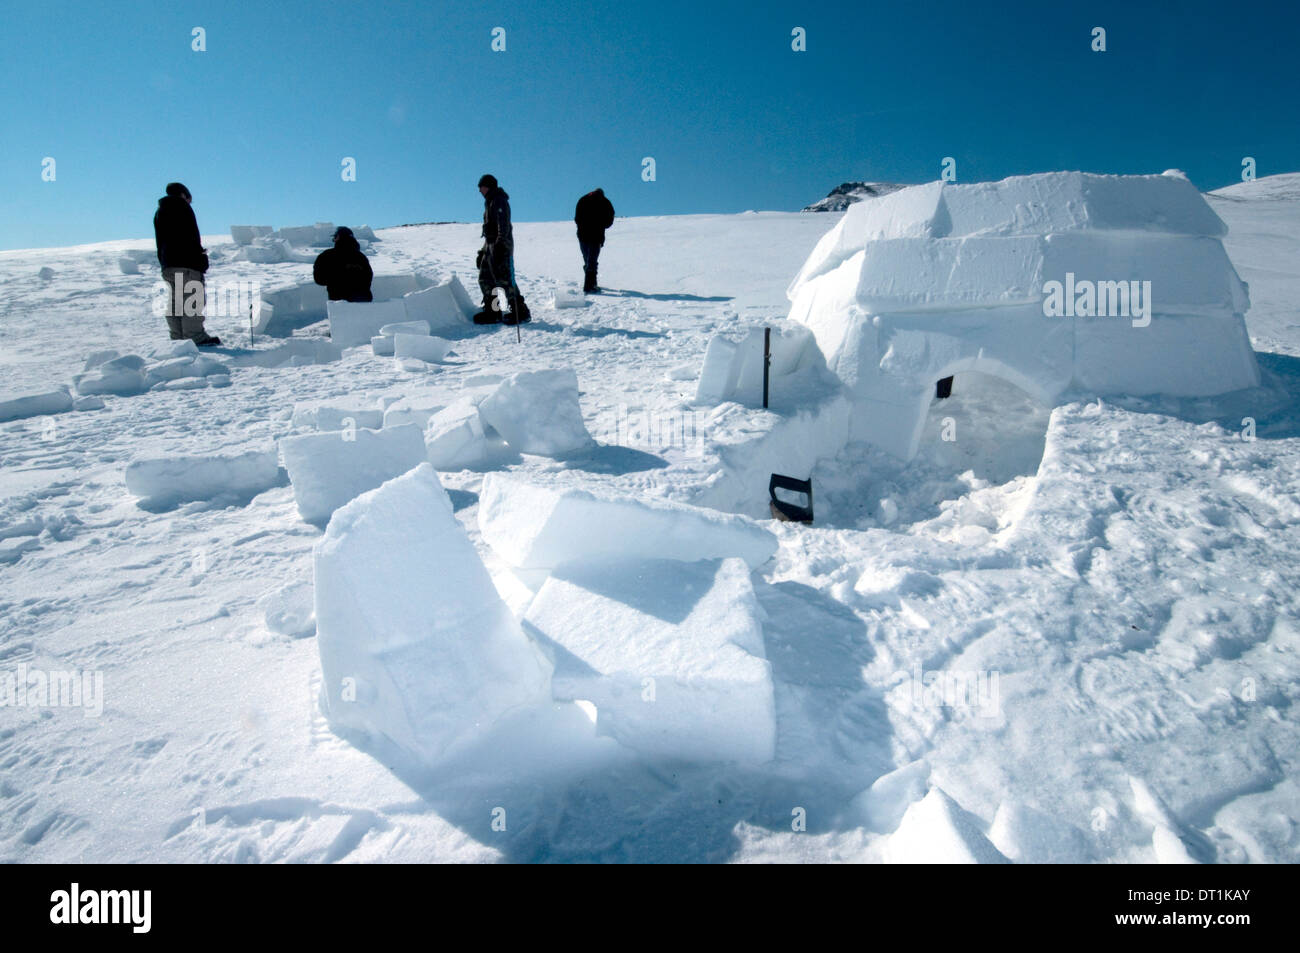 Inuit cutting snow blocks using a saw and a knife to make an igloo, Nunavut, Canada, North America - Stock Image